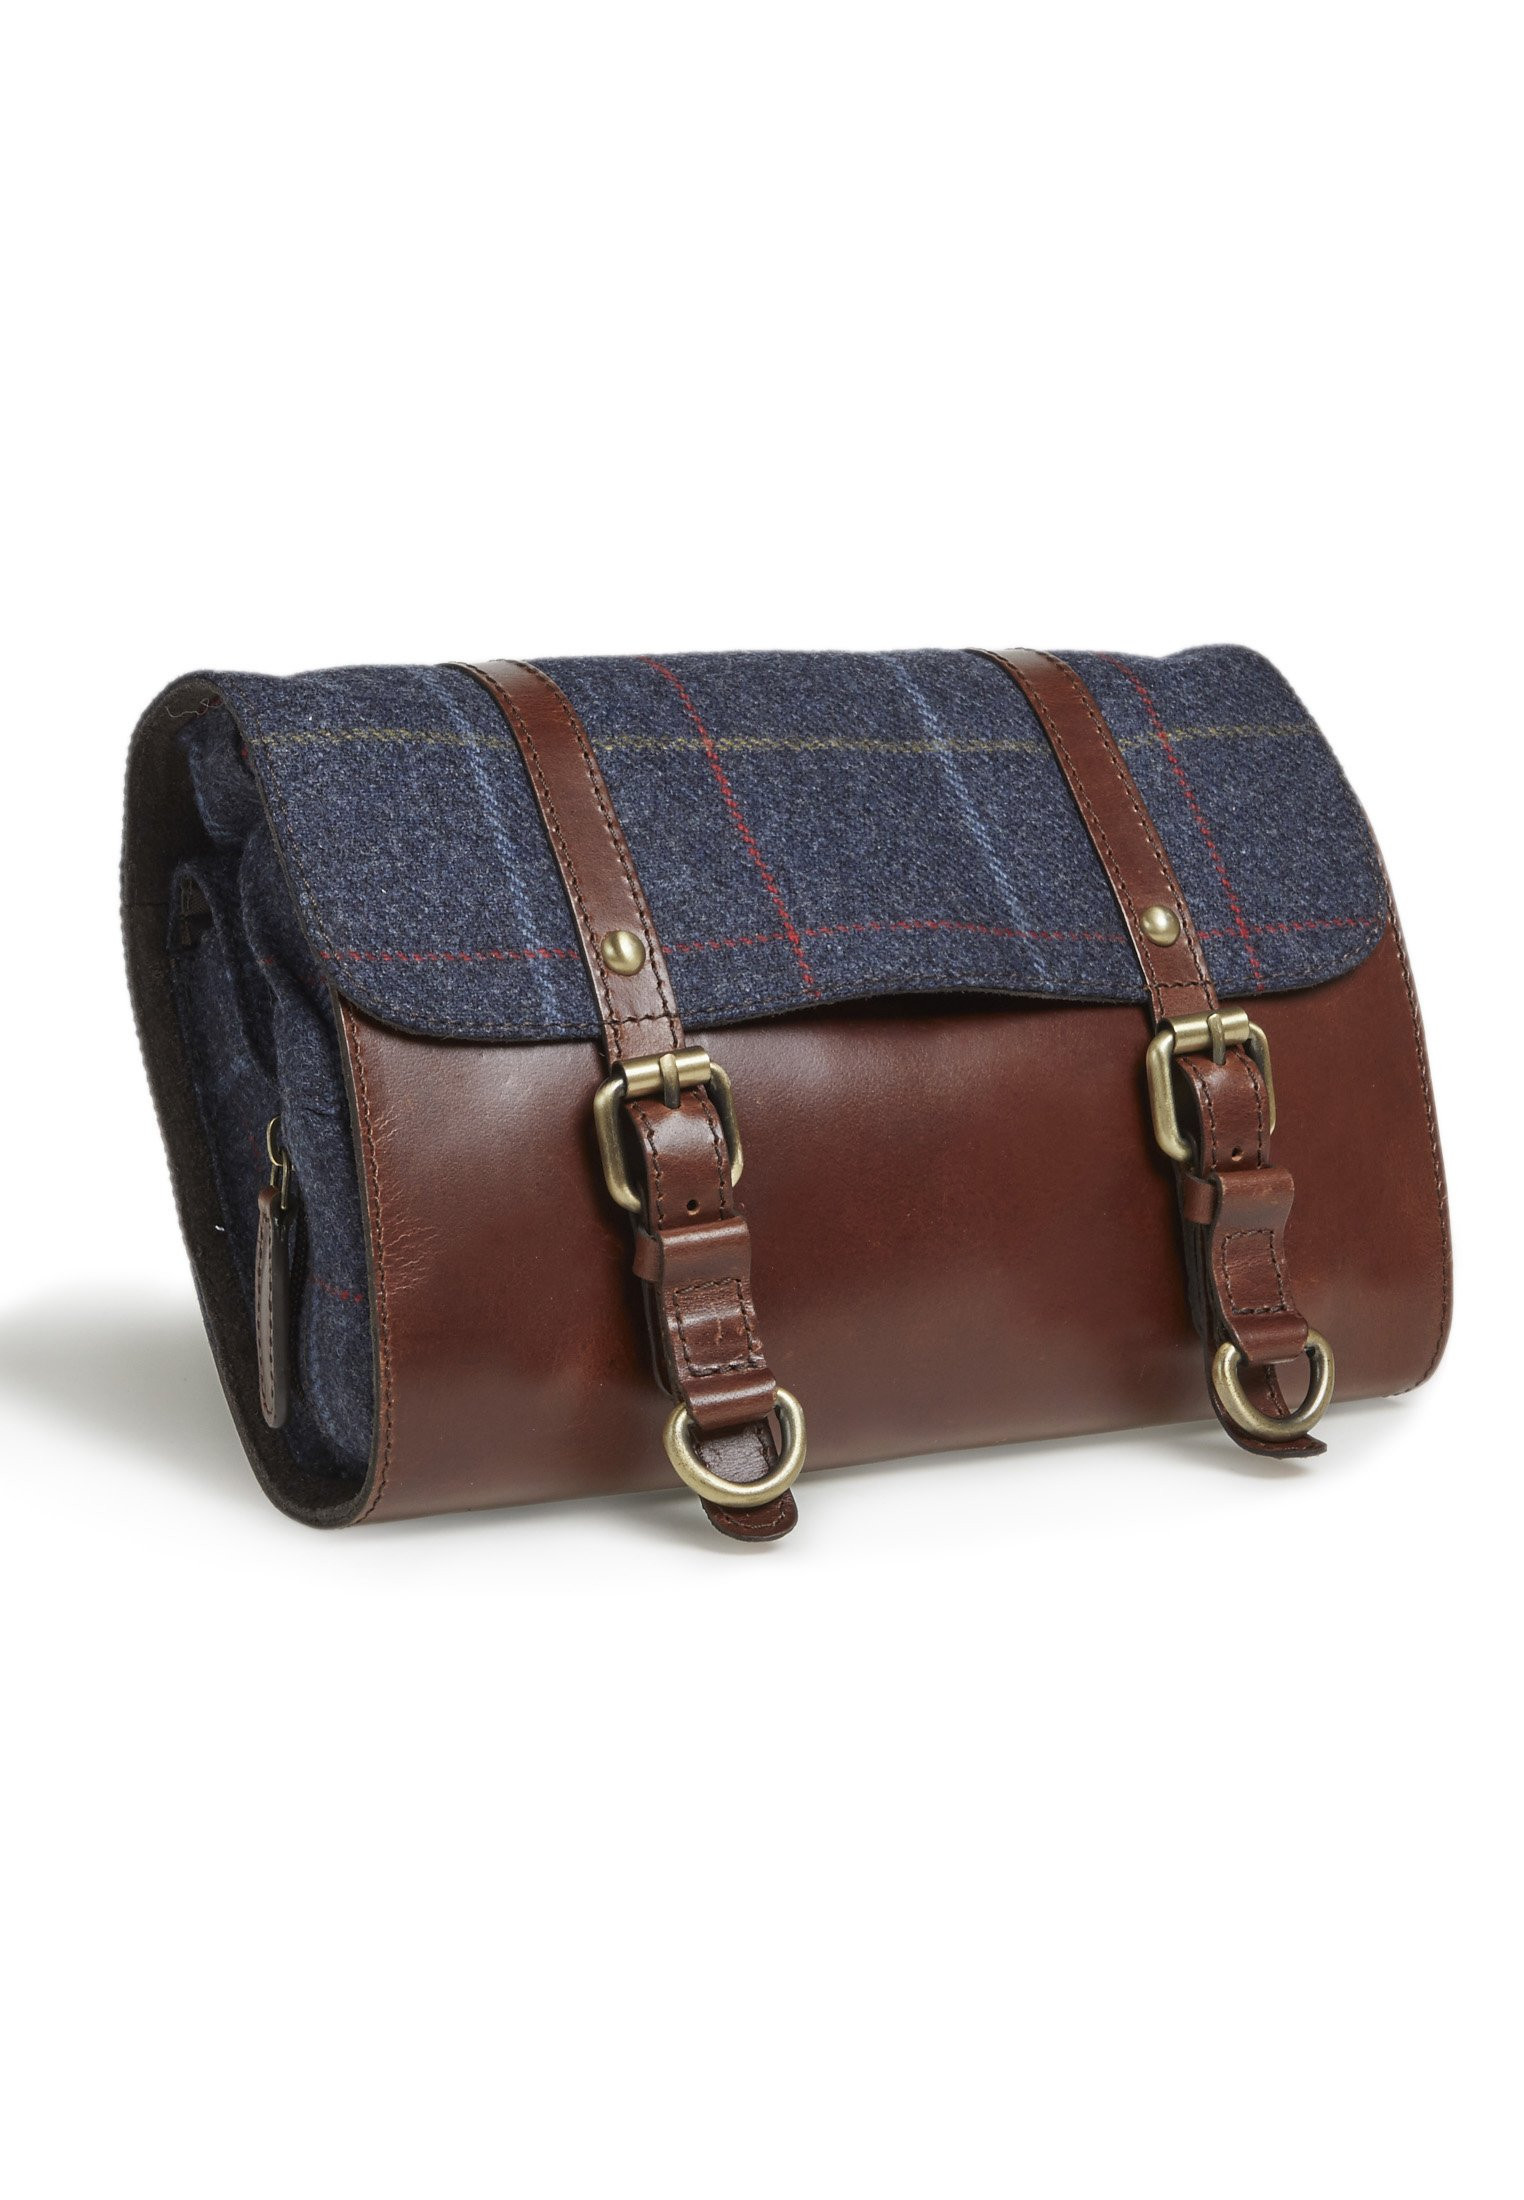 Haincliffe Tweed Washbag With Straps